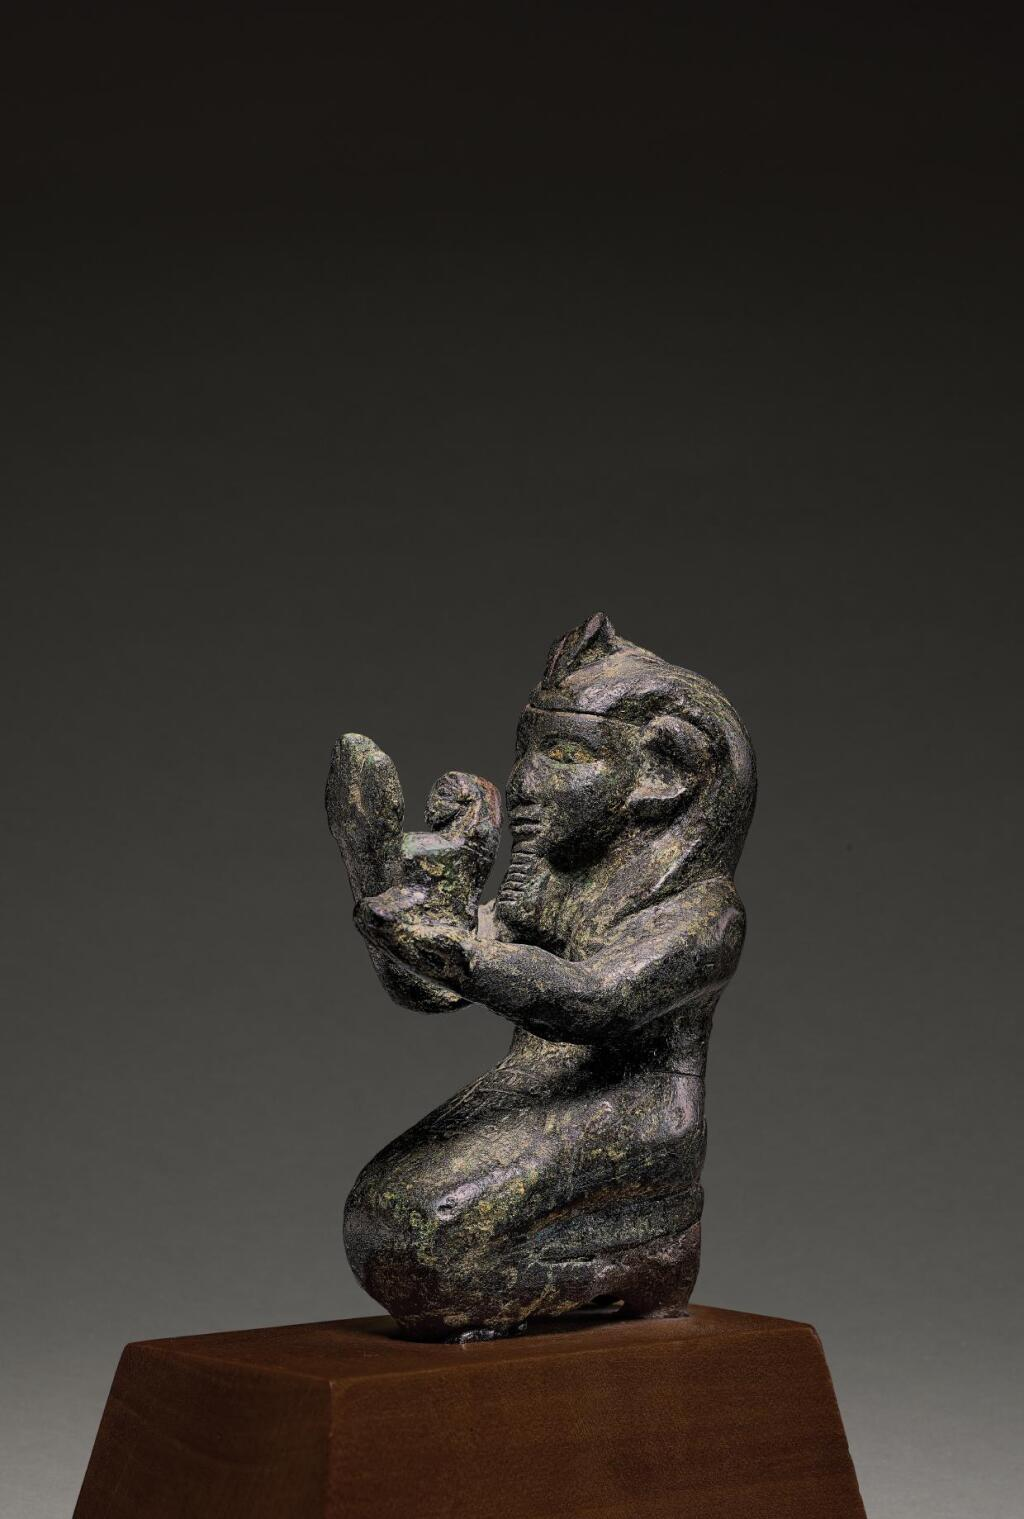 AN EGYPTIAN BRONZE FIGURE OF A KUSHITE KING, 25TH DYNASTY, 750-656 B.C.